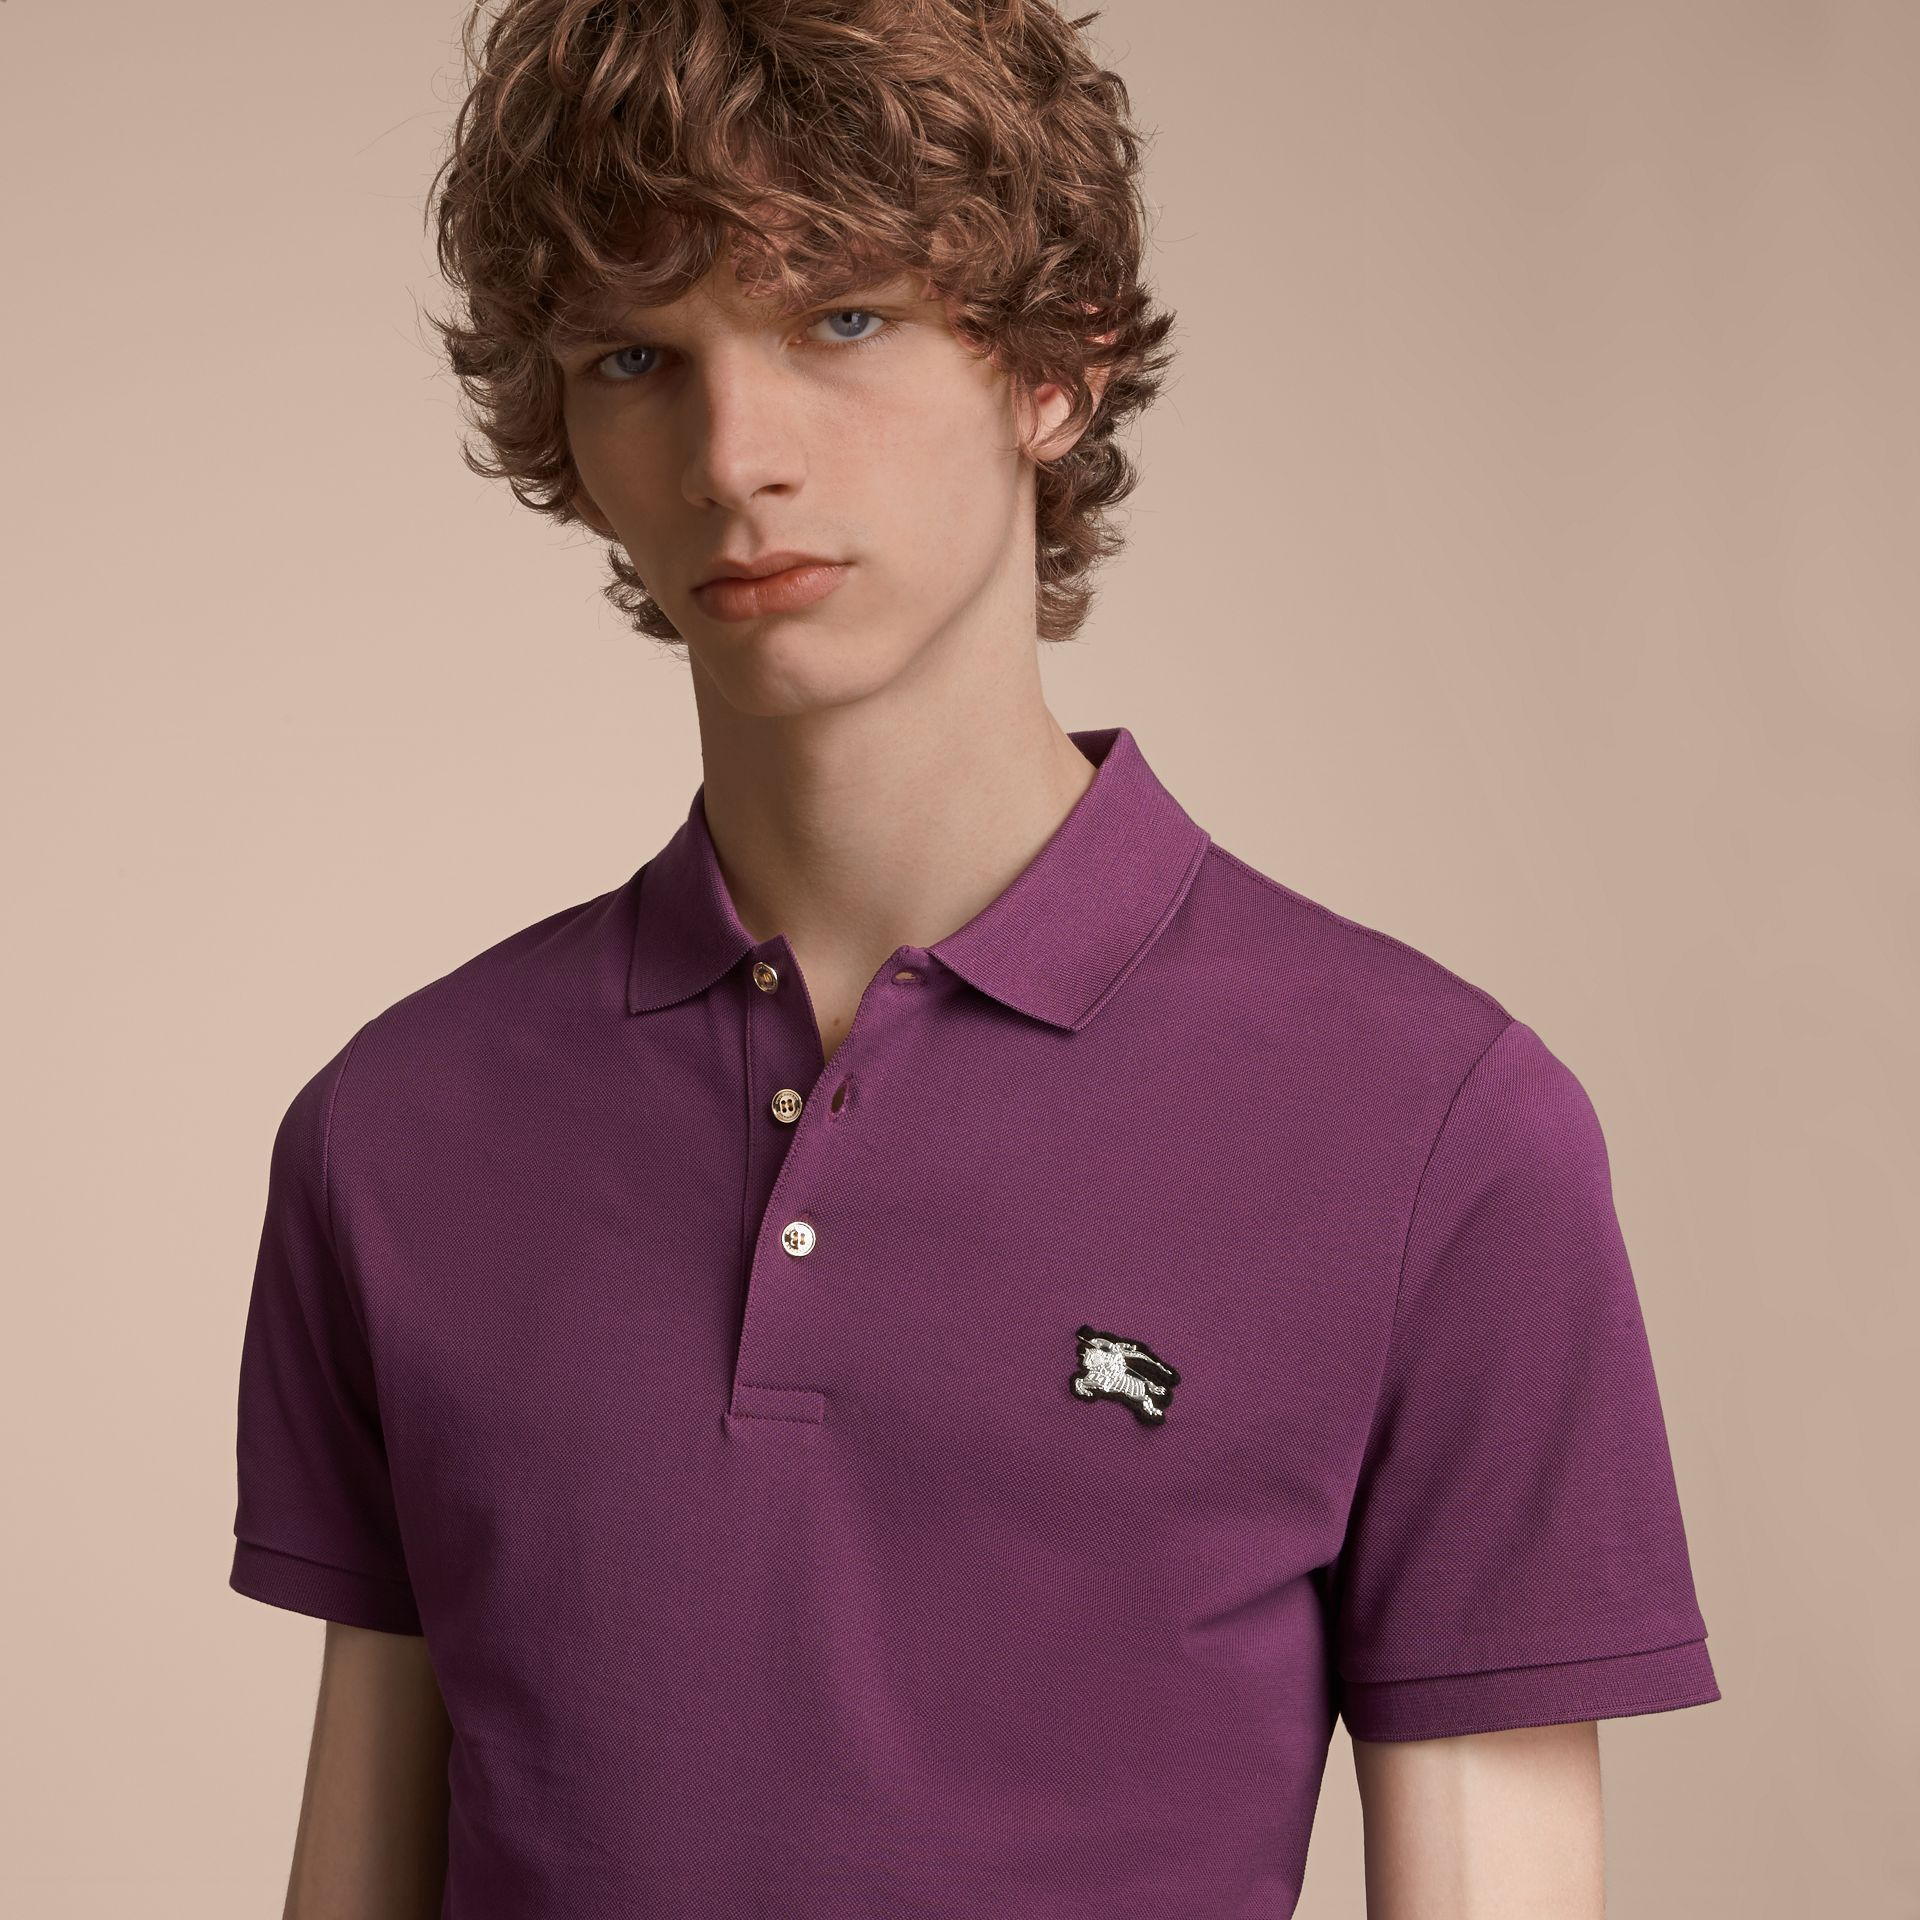 Cotton Piqué Polo Shirt in Heather - Men | Burberry Australia - gallery image 5